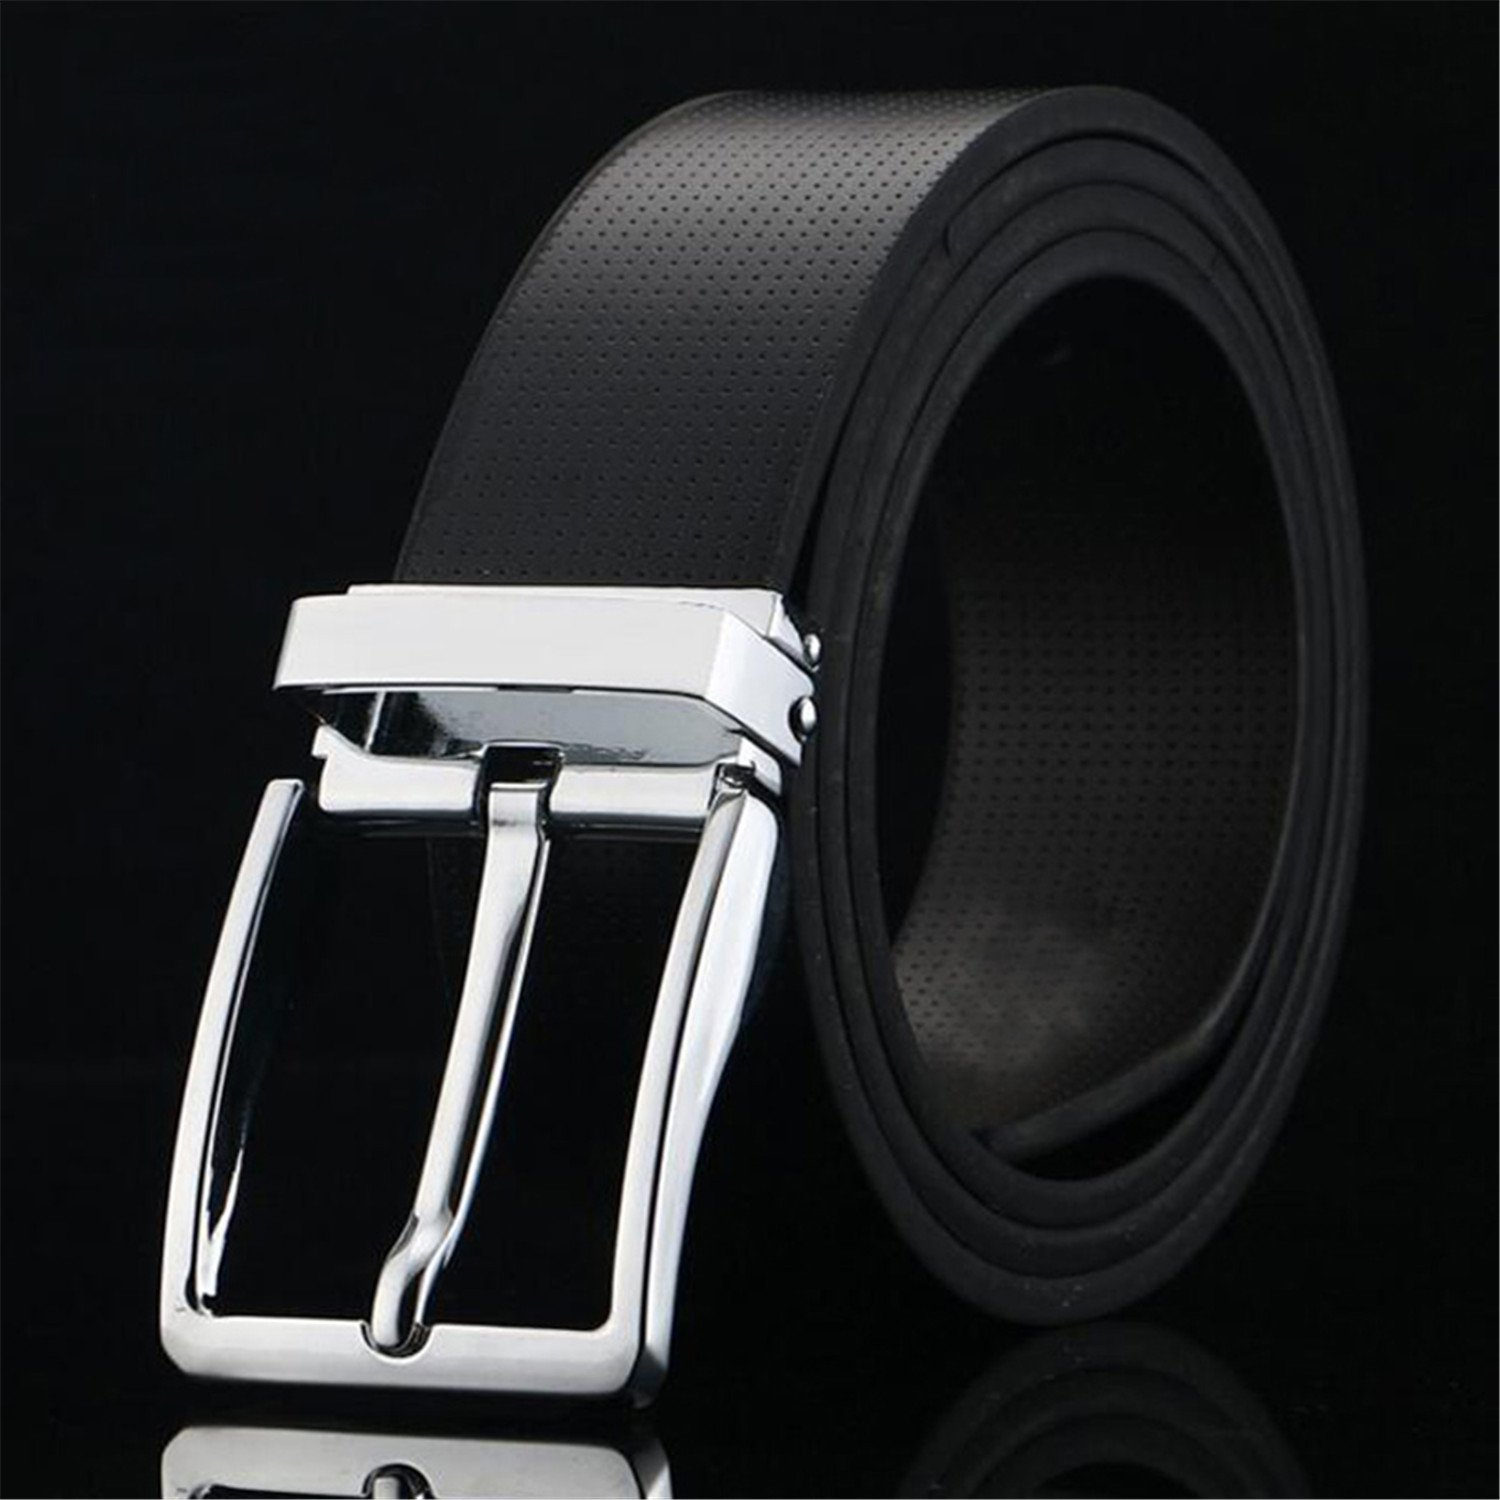 d8b69e7ded7e Fashion?100% Cowhide Genuine Leather Belts for Men Brand Strap Male Pin  Buckle Business Mens Belts Black/white Colors black 125cm at Amazon Women's  Clothing ...